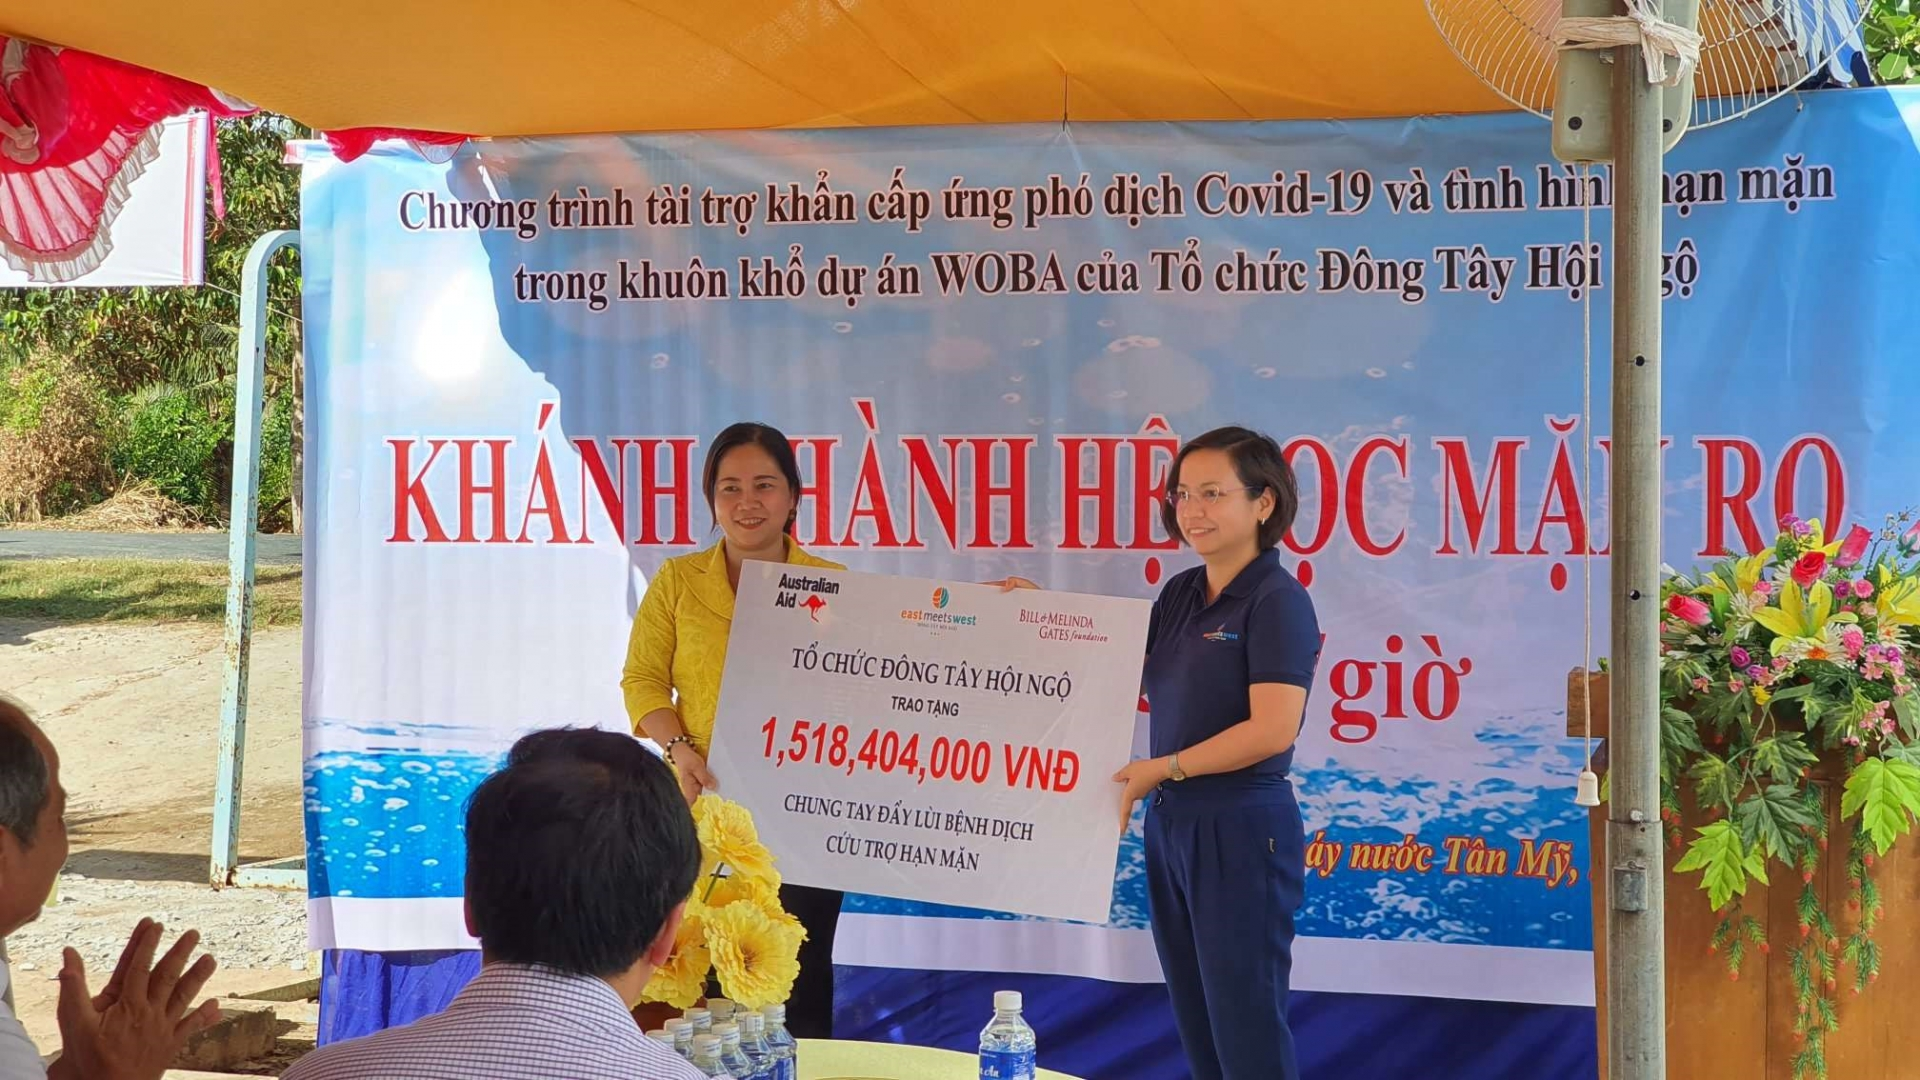 water filtration kiosk ensures quality water for 6000 households in ben tre